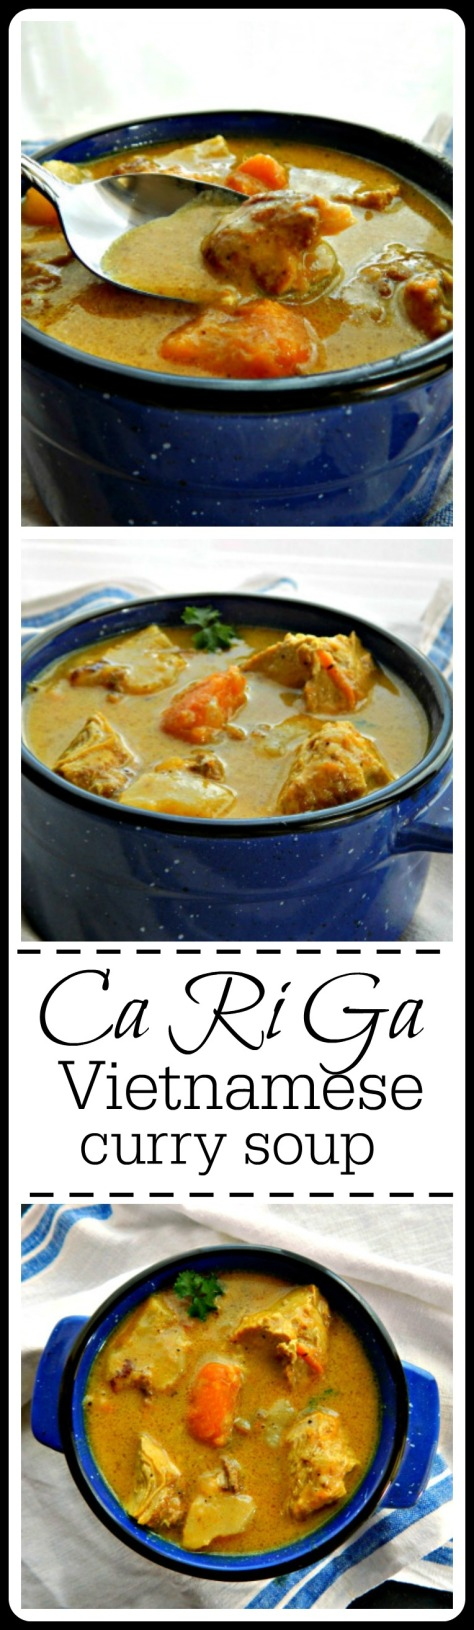 Ca Ri Ga - a simple and stunning Vietnamese Curry. Downhome cooking at it's best! You'll want to sop it up with a baguette!